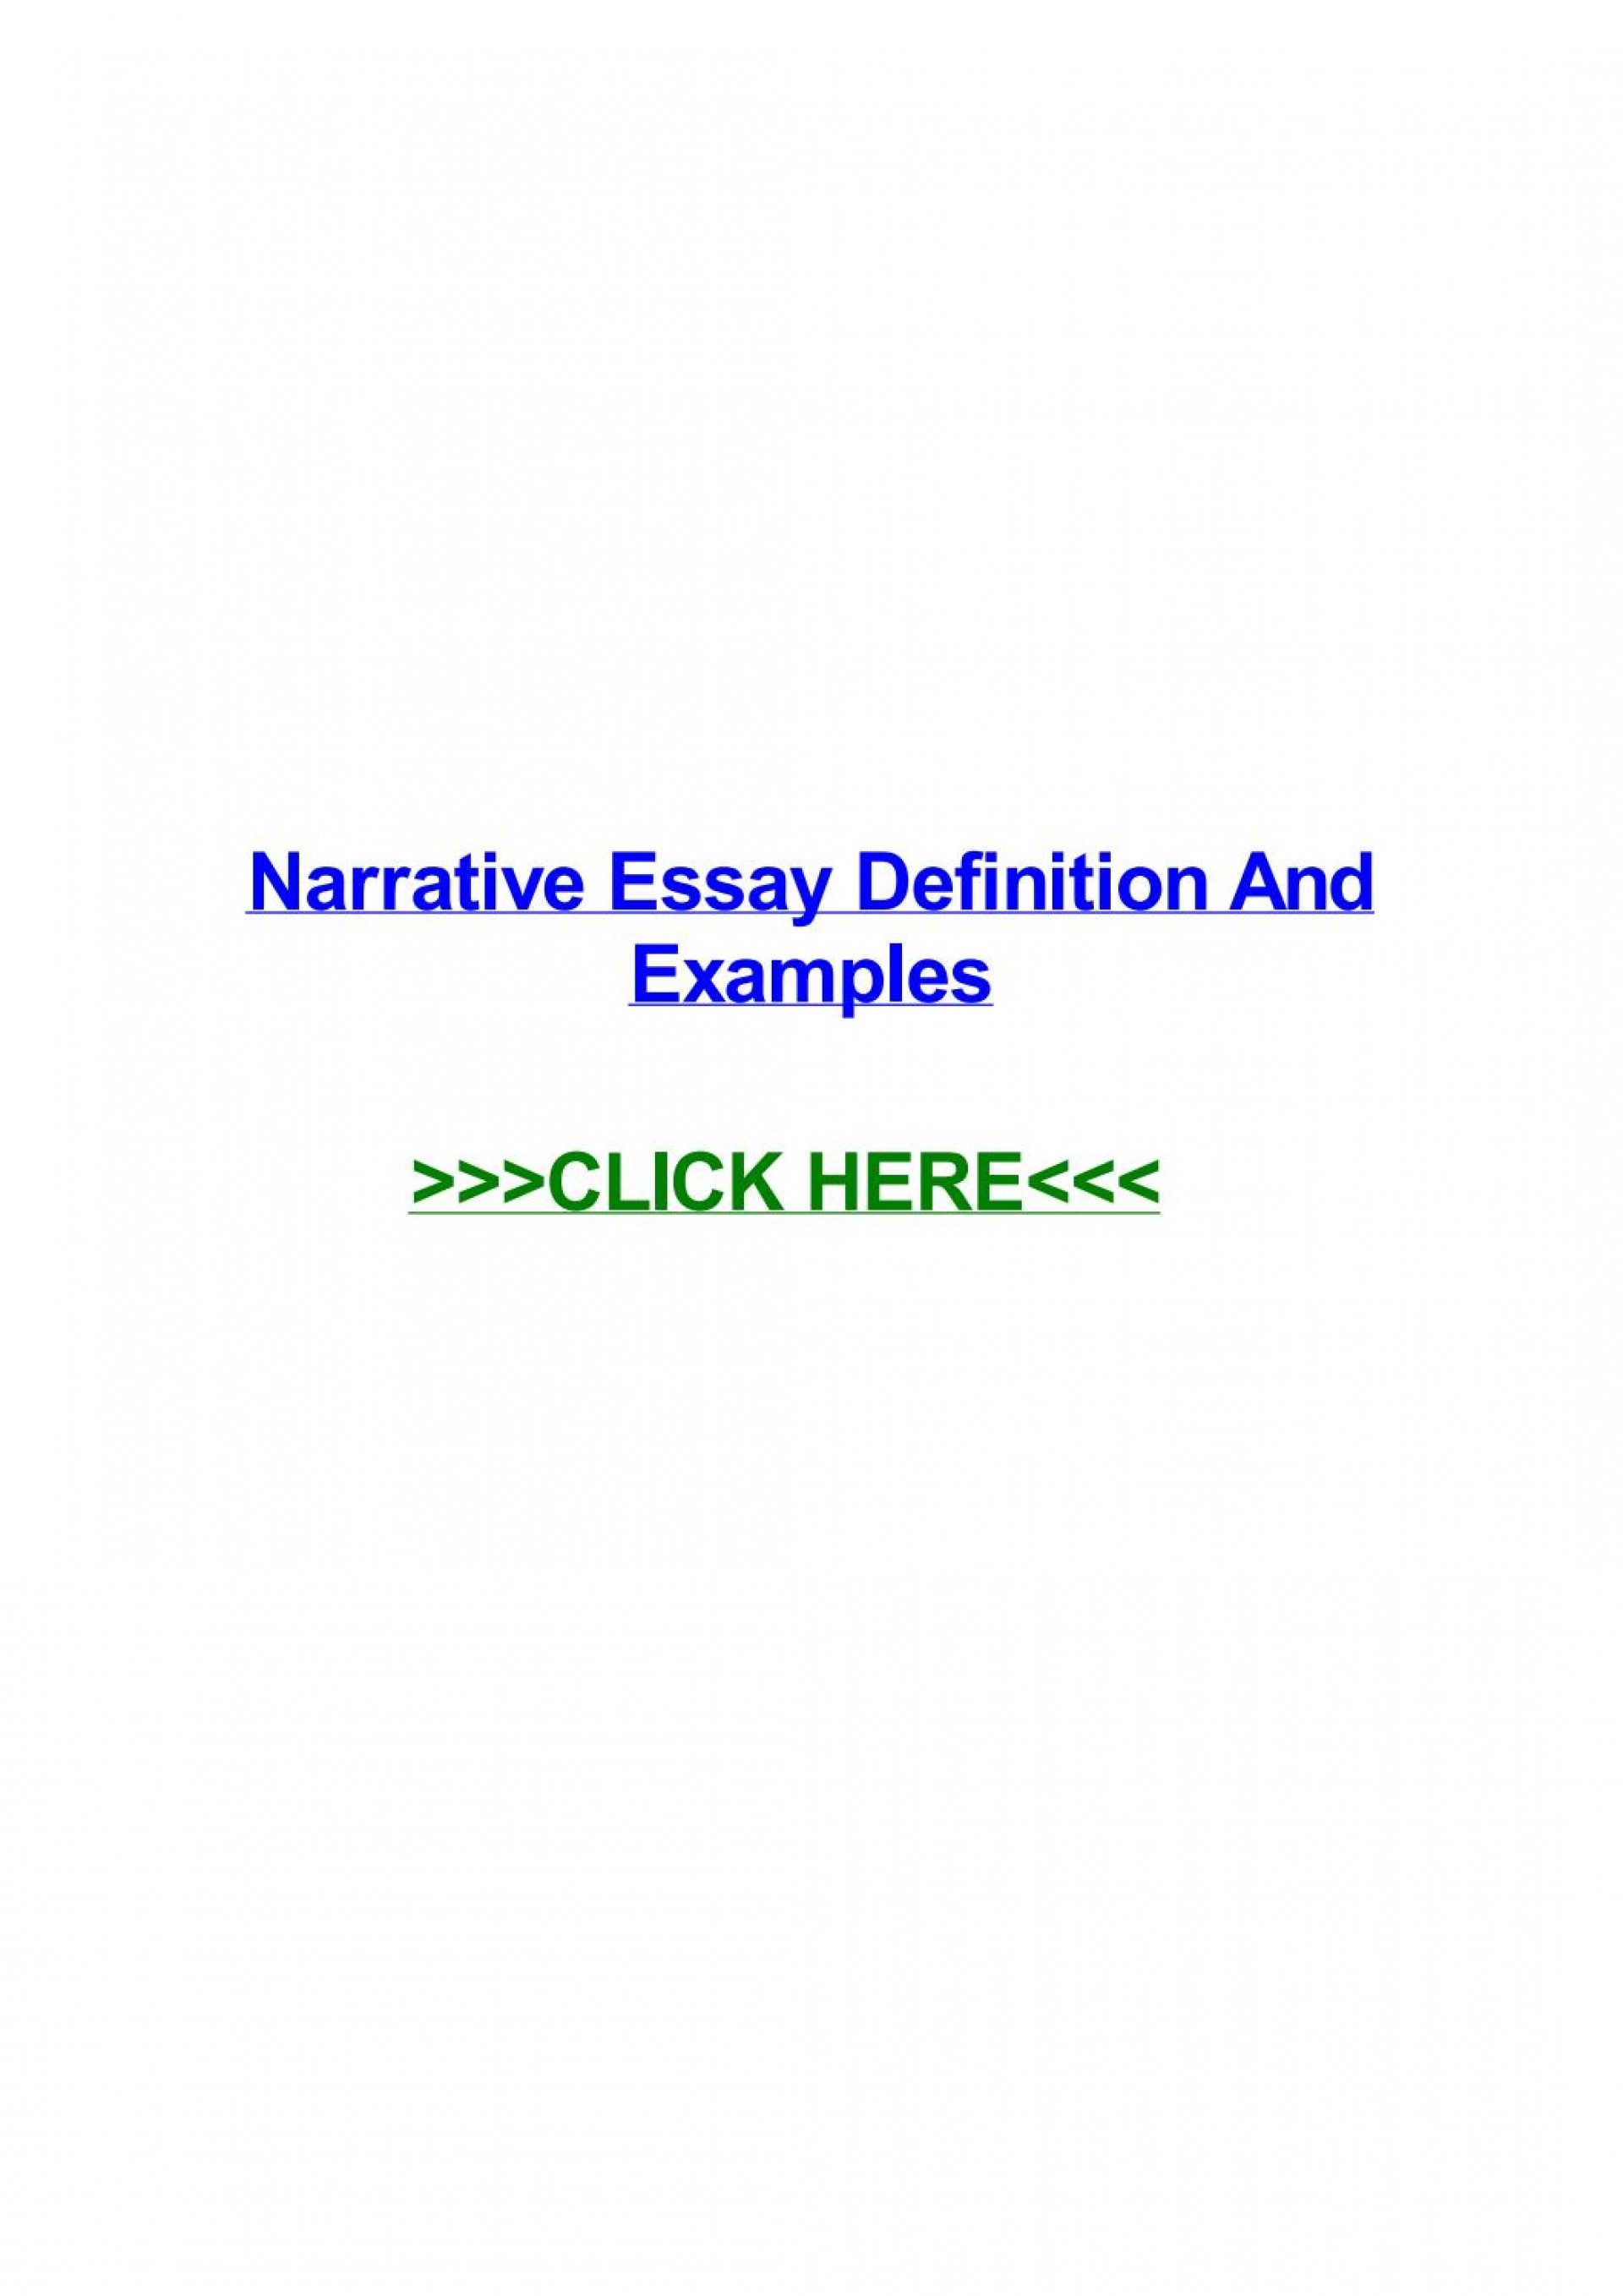 014 Narrative Essay Definition Example Page 1 Stunning Literature Meaning 1920